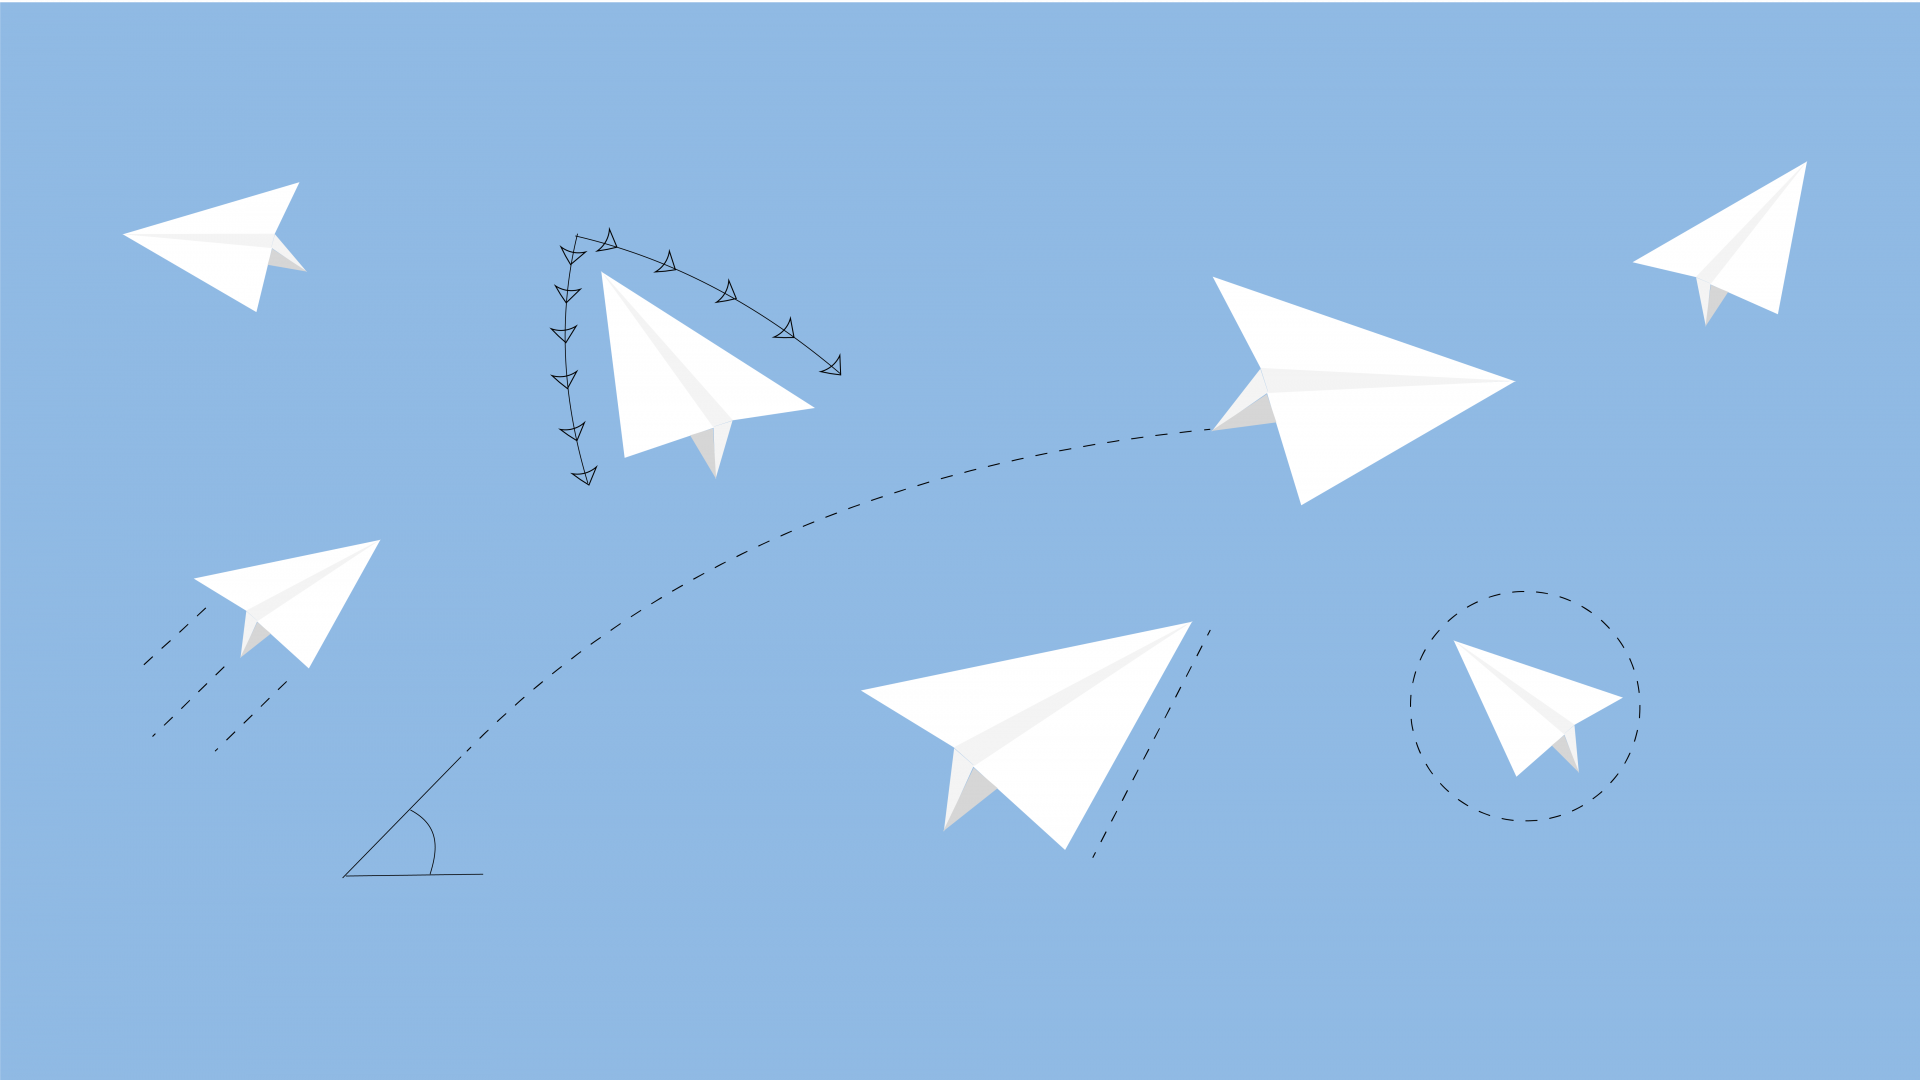 Several paper aeroplane graphics against a blue background.